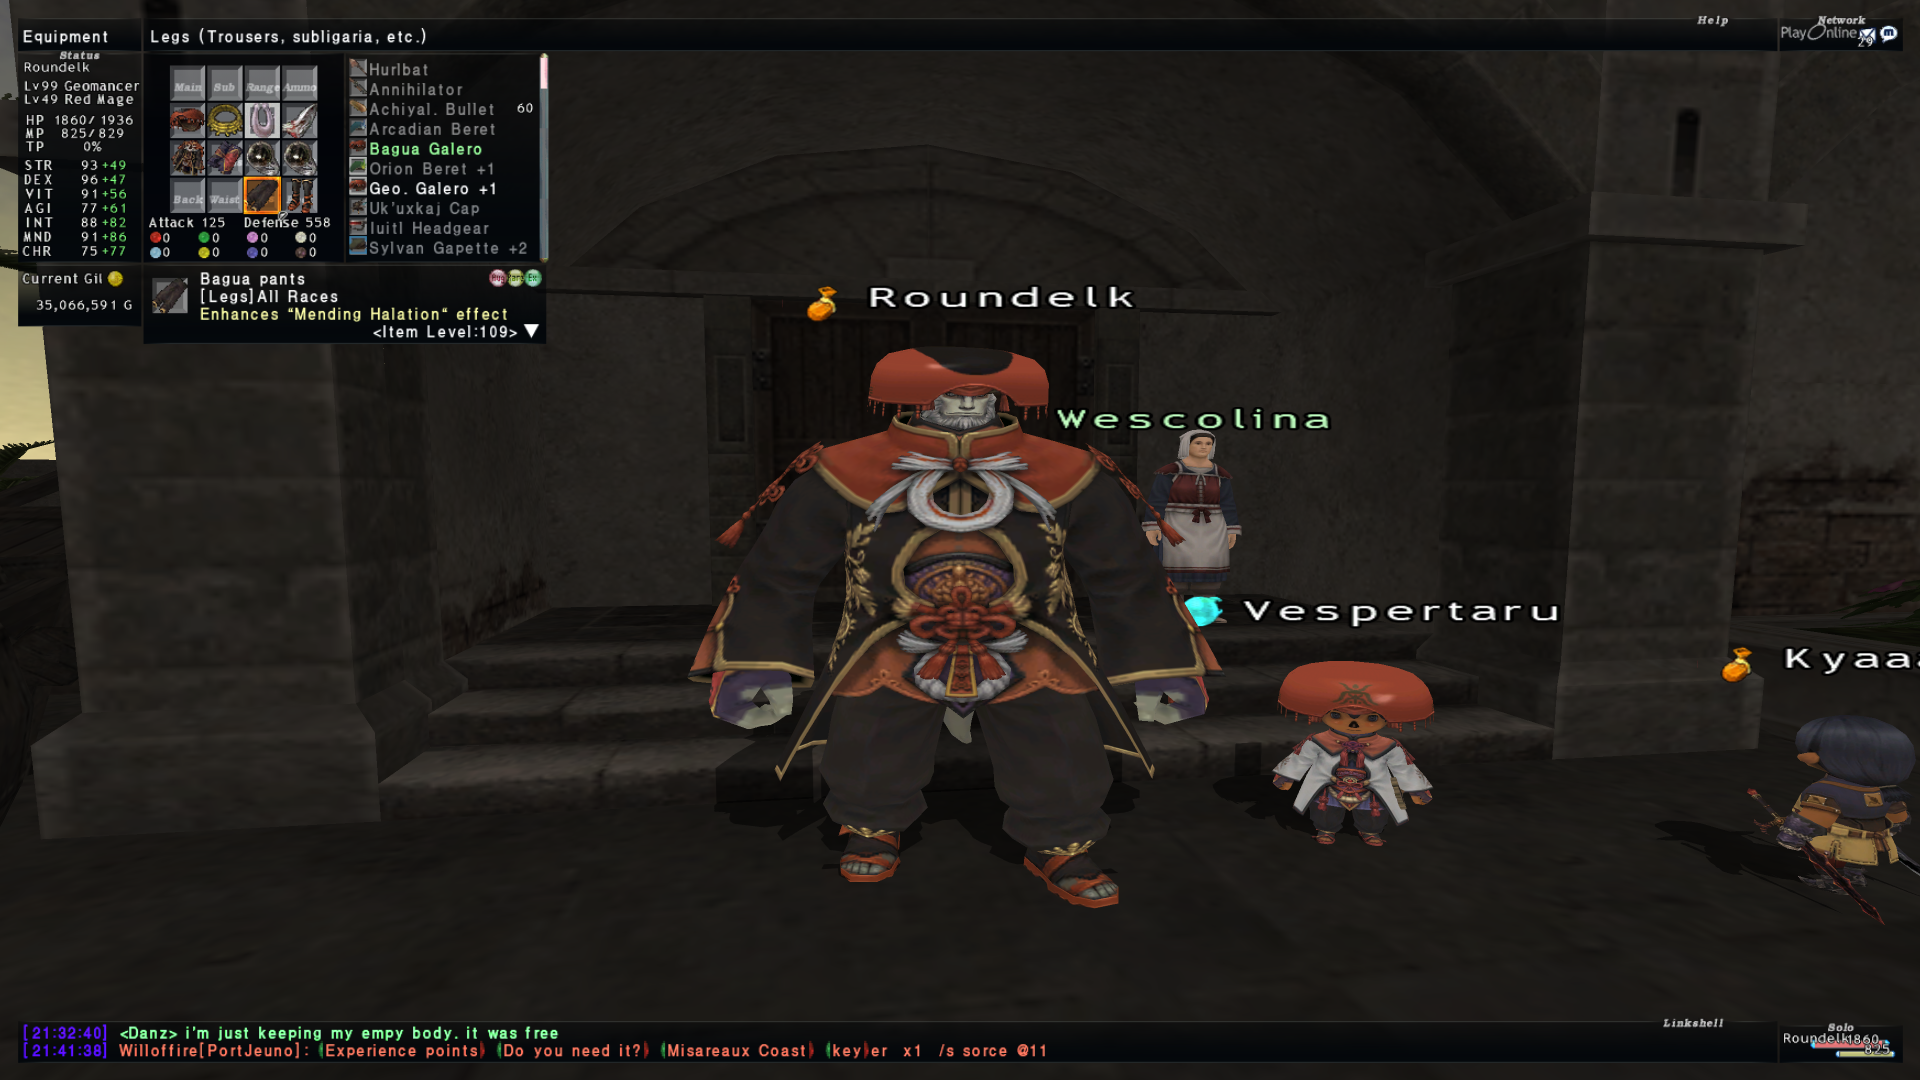 roundelk ffxi trade when have relic rems nothing armor zoning talk logging said does anyone tried either hasnt forums that worked they solution synth will fiber malboro tell exactly wikis need what wootz case reforges stuff right take issue this well items yeah doing valor give trying surcoat chapter tale info upgrade